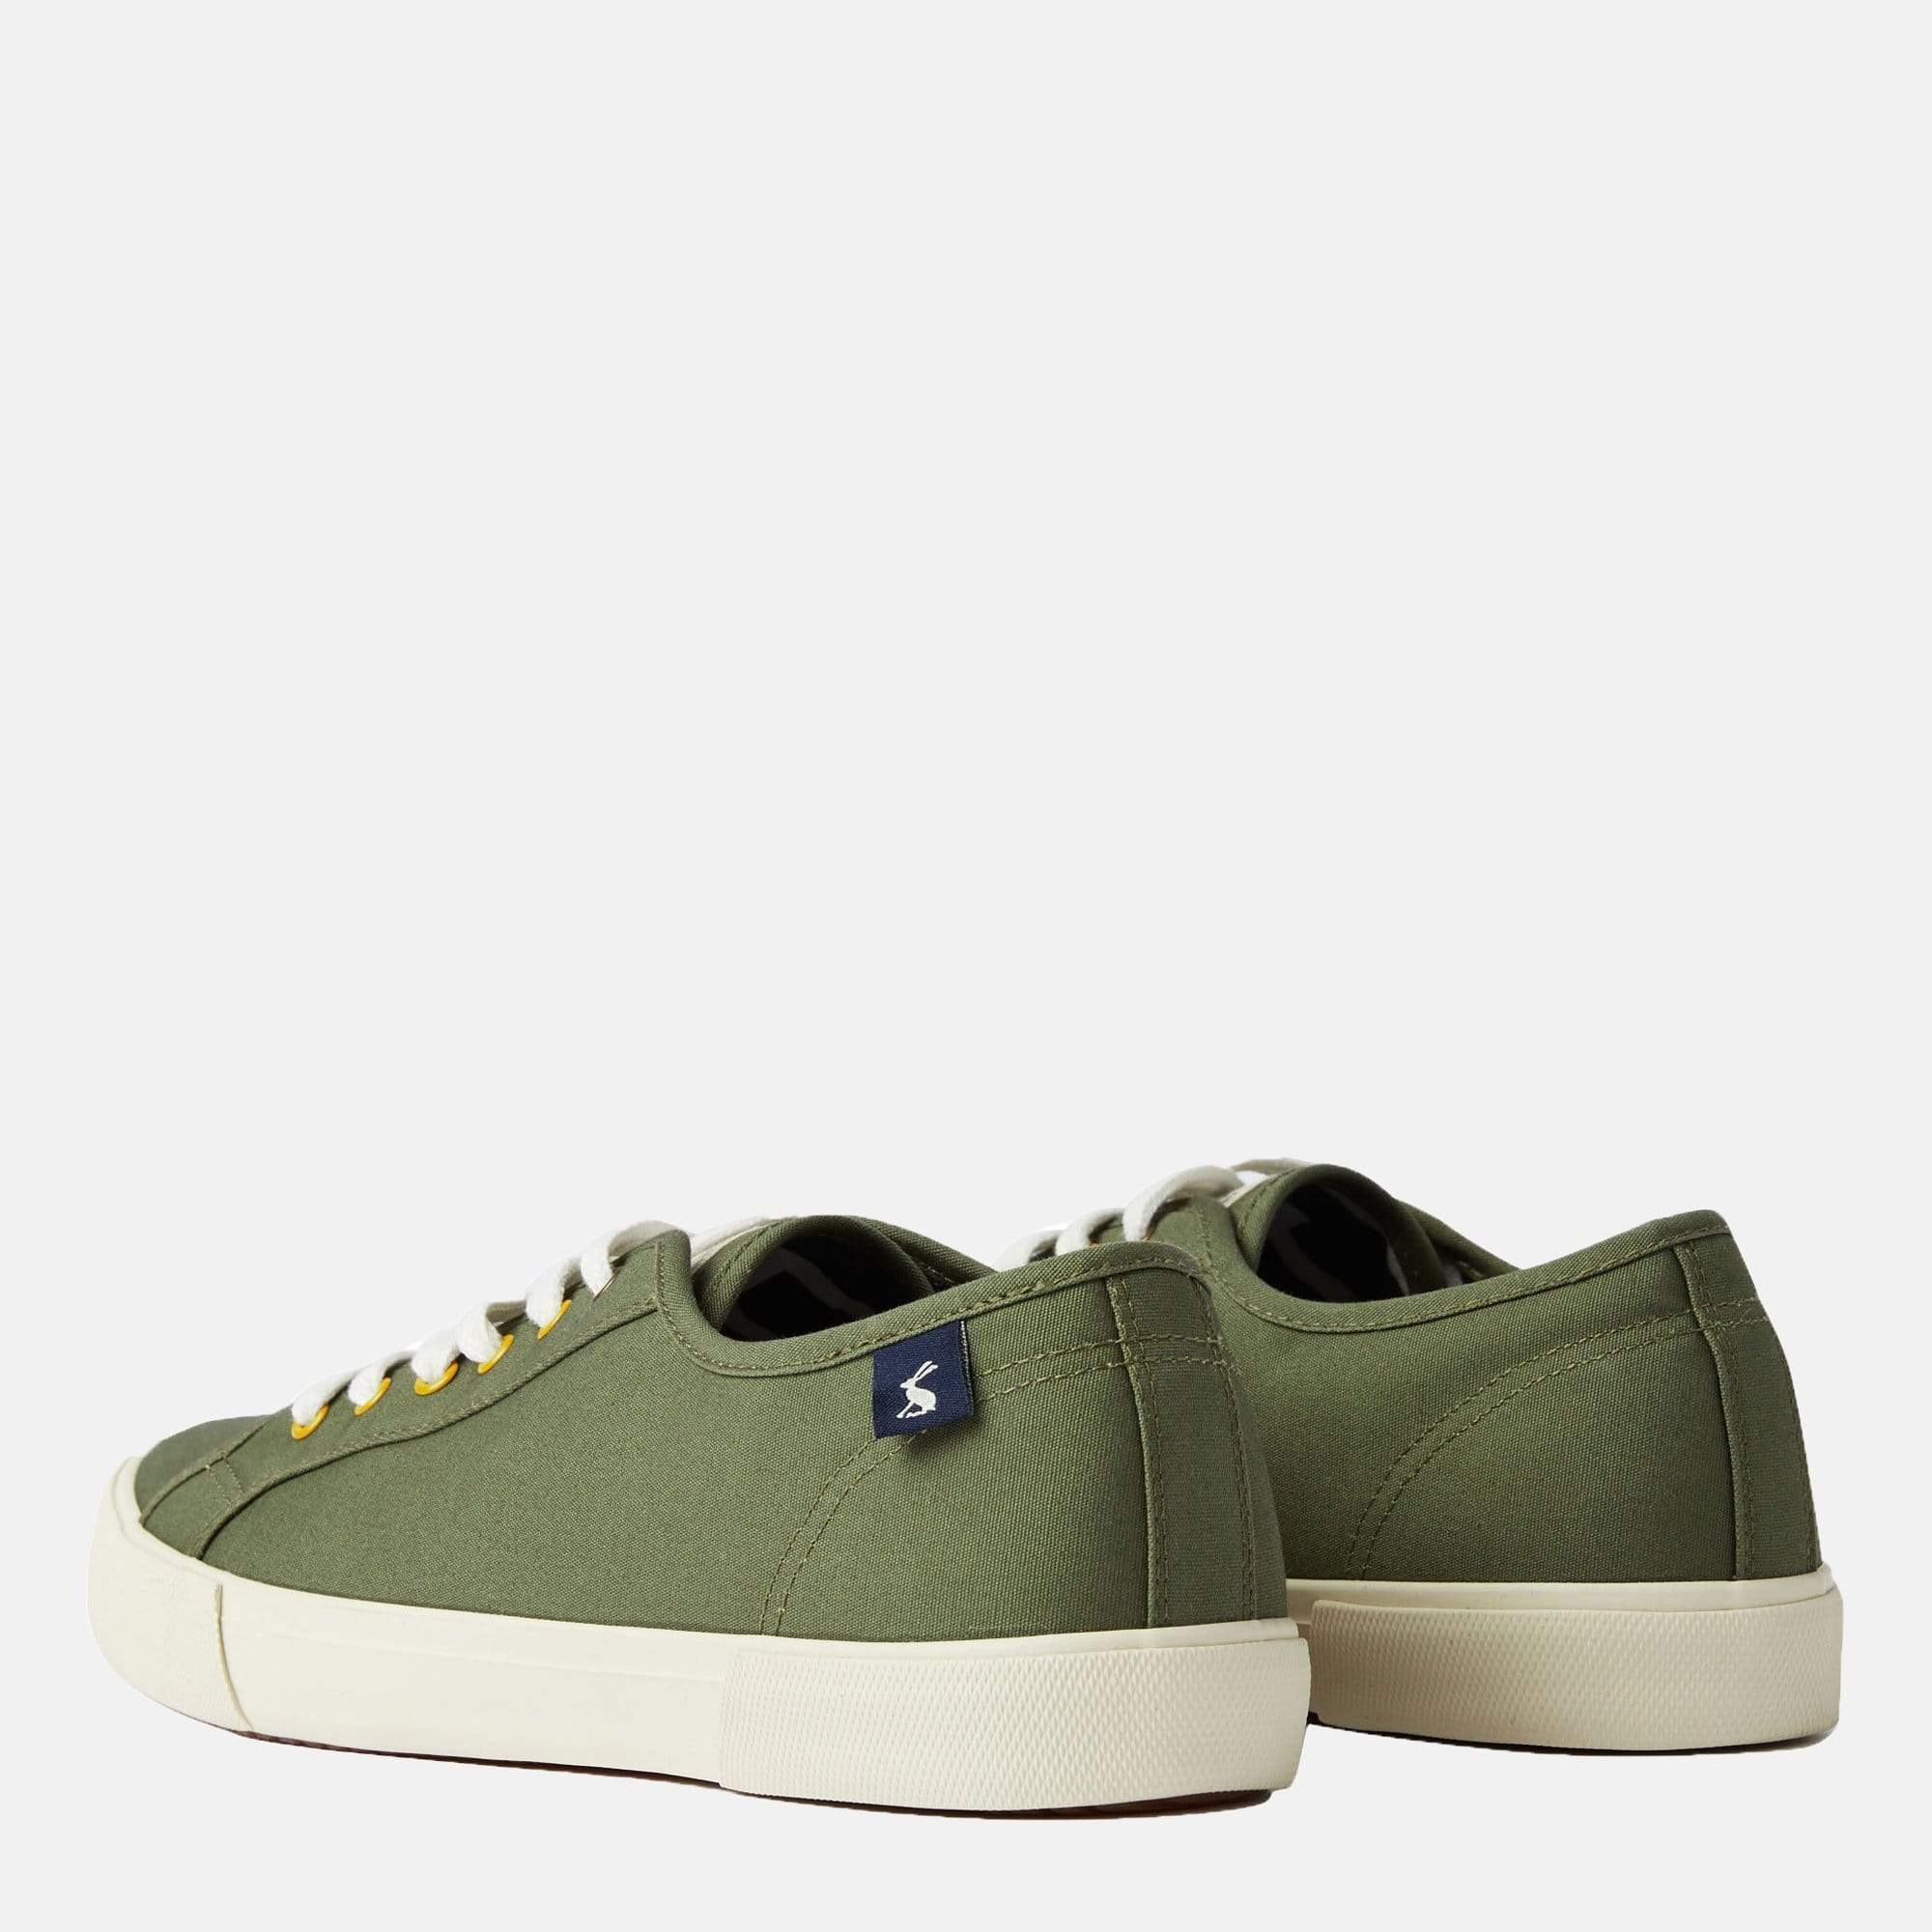 Bells Shoes Joules Footwear Coast Pump Khaki Green